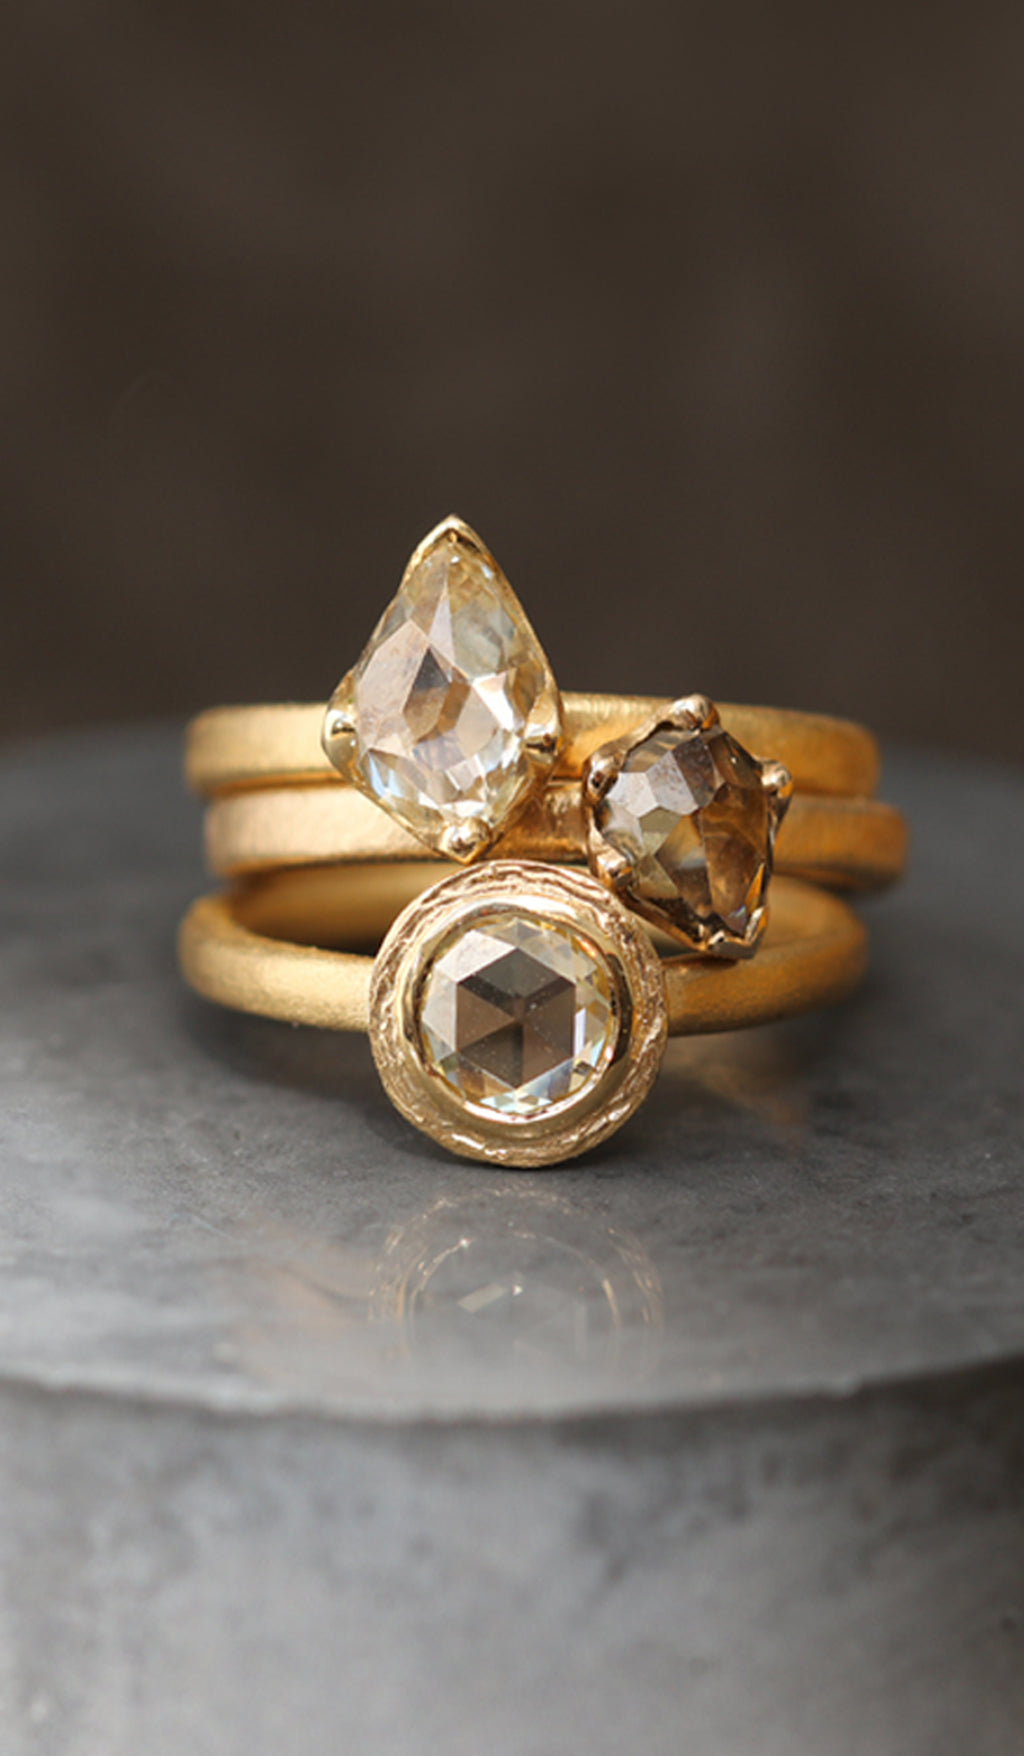 ONE OF A KIND - Diamond Rings